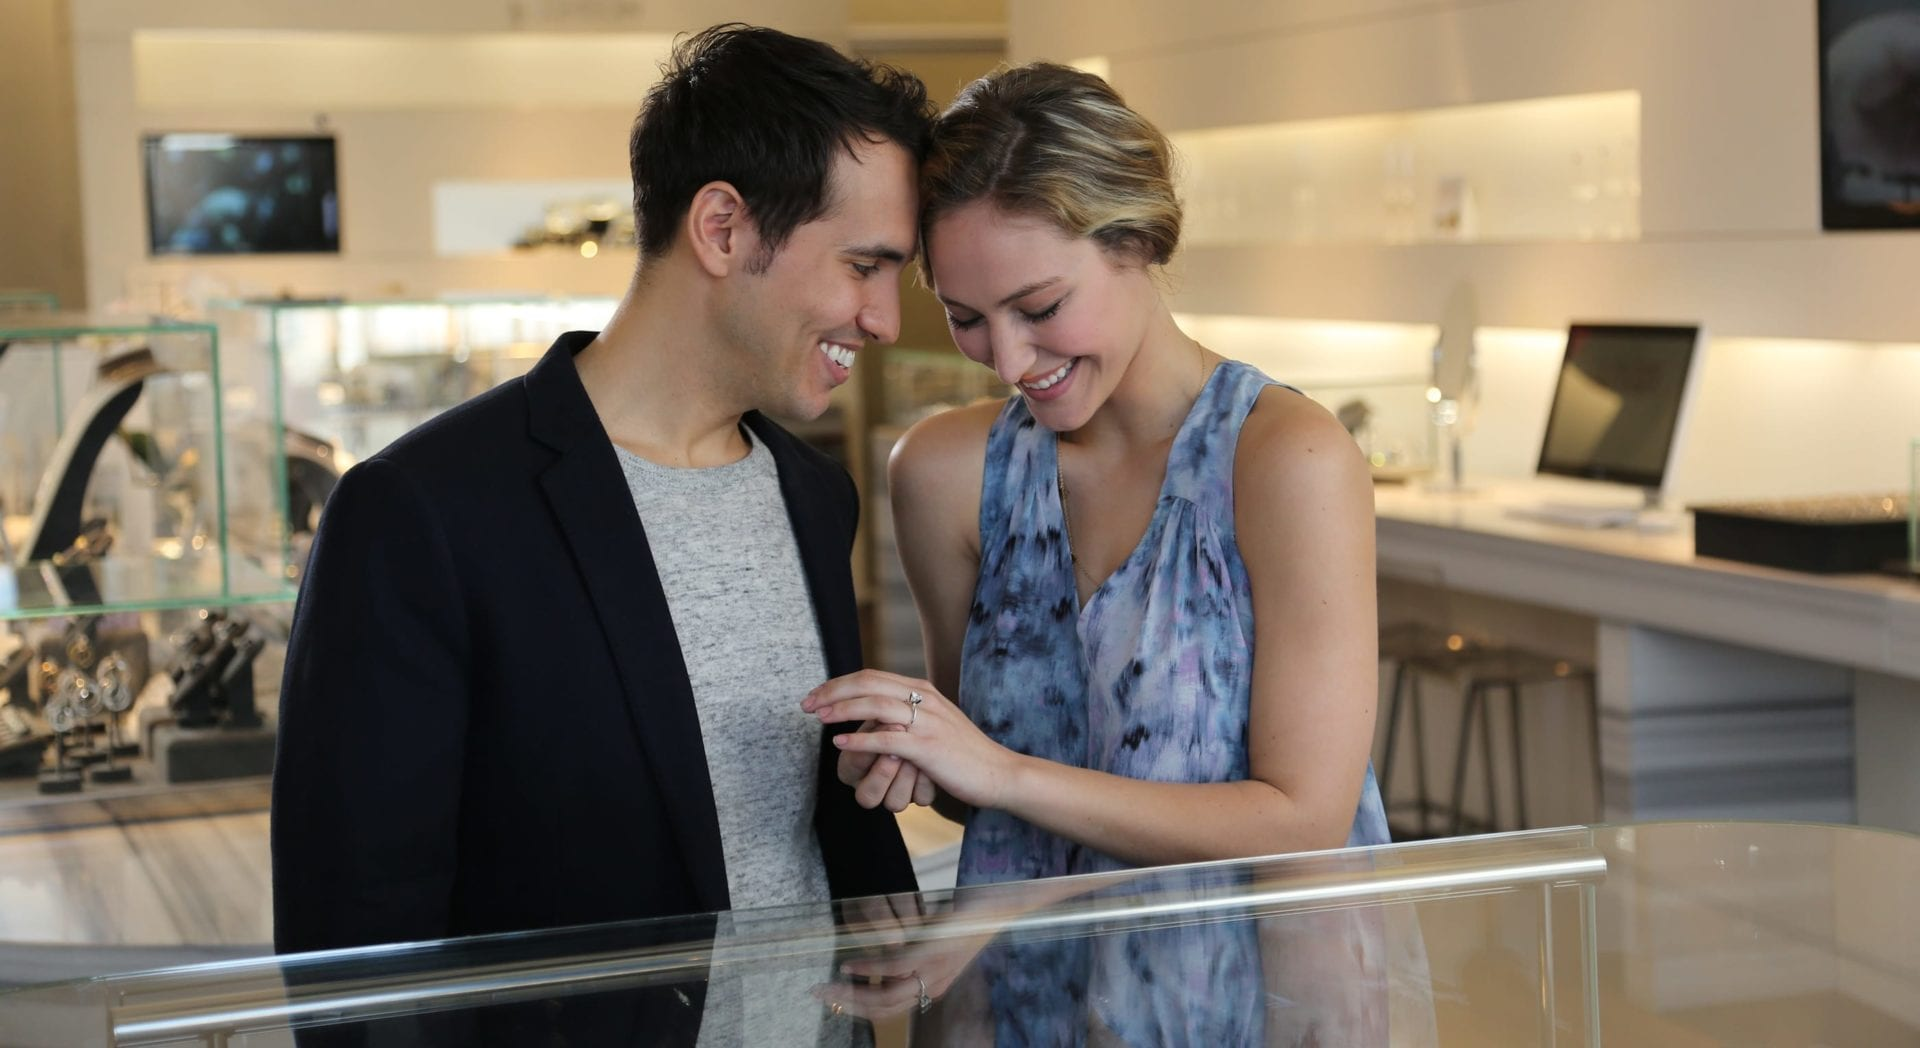 Should You Go Ring Shopping Together The Plunge